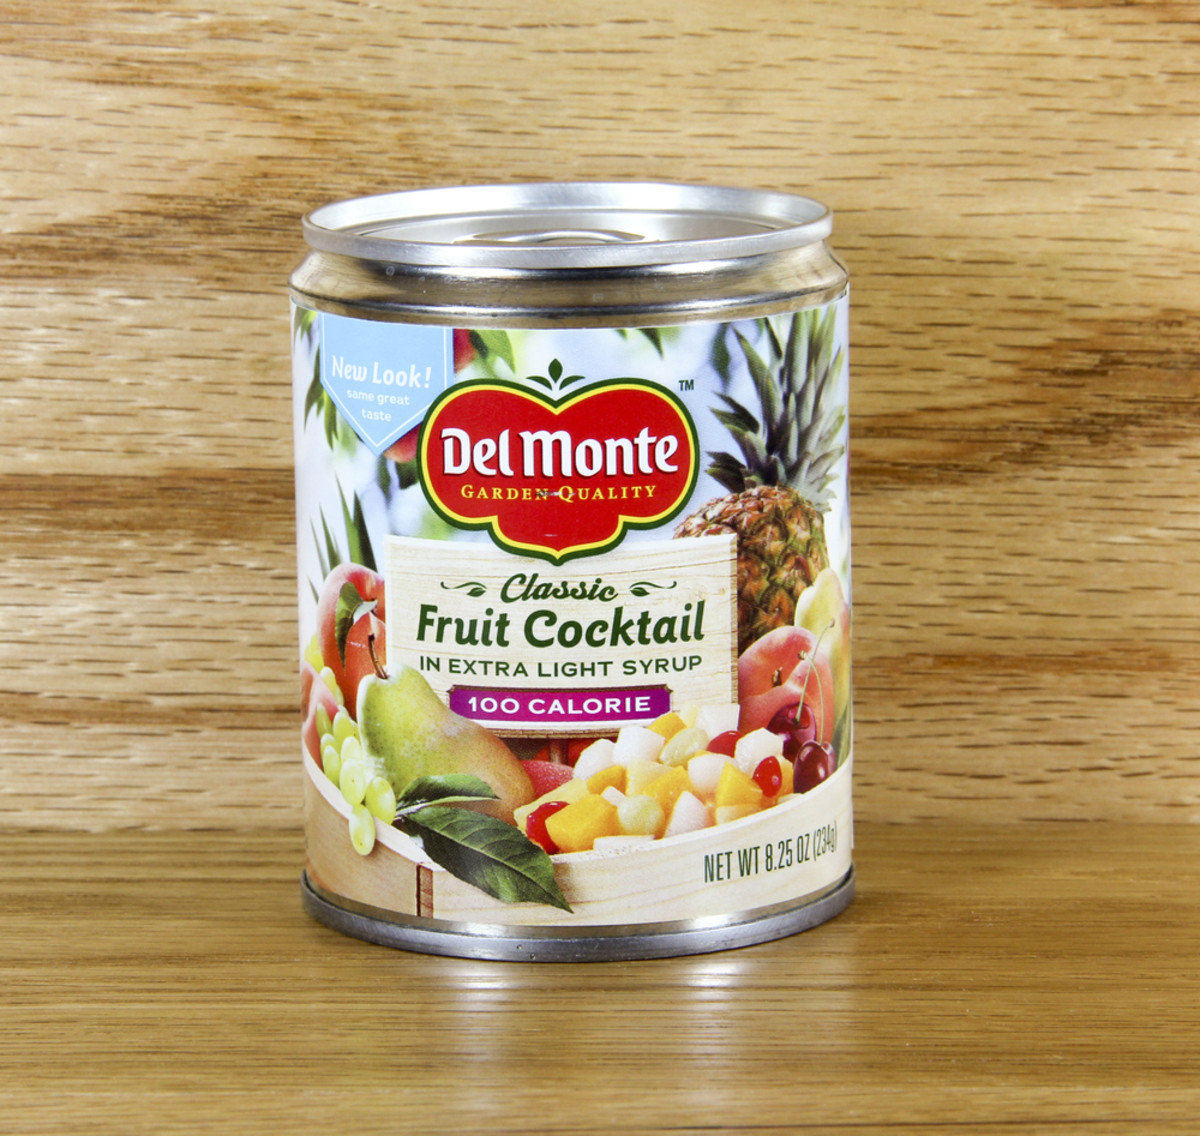 Del Monte Makes Double-Barreled Announcement to Eradicate BPA and GMOs